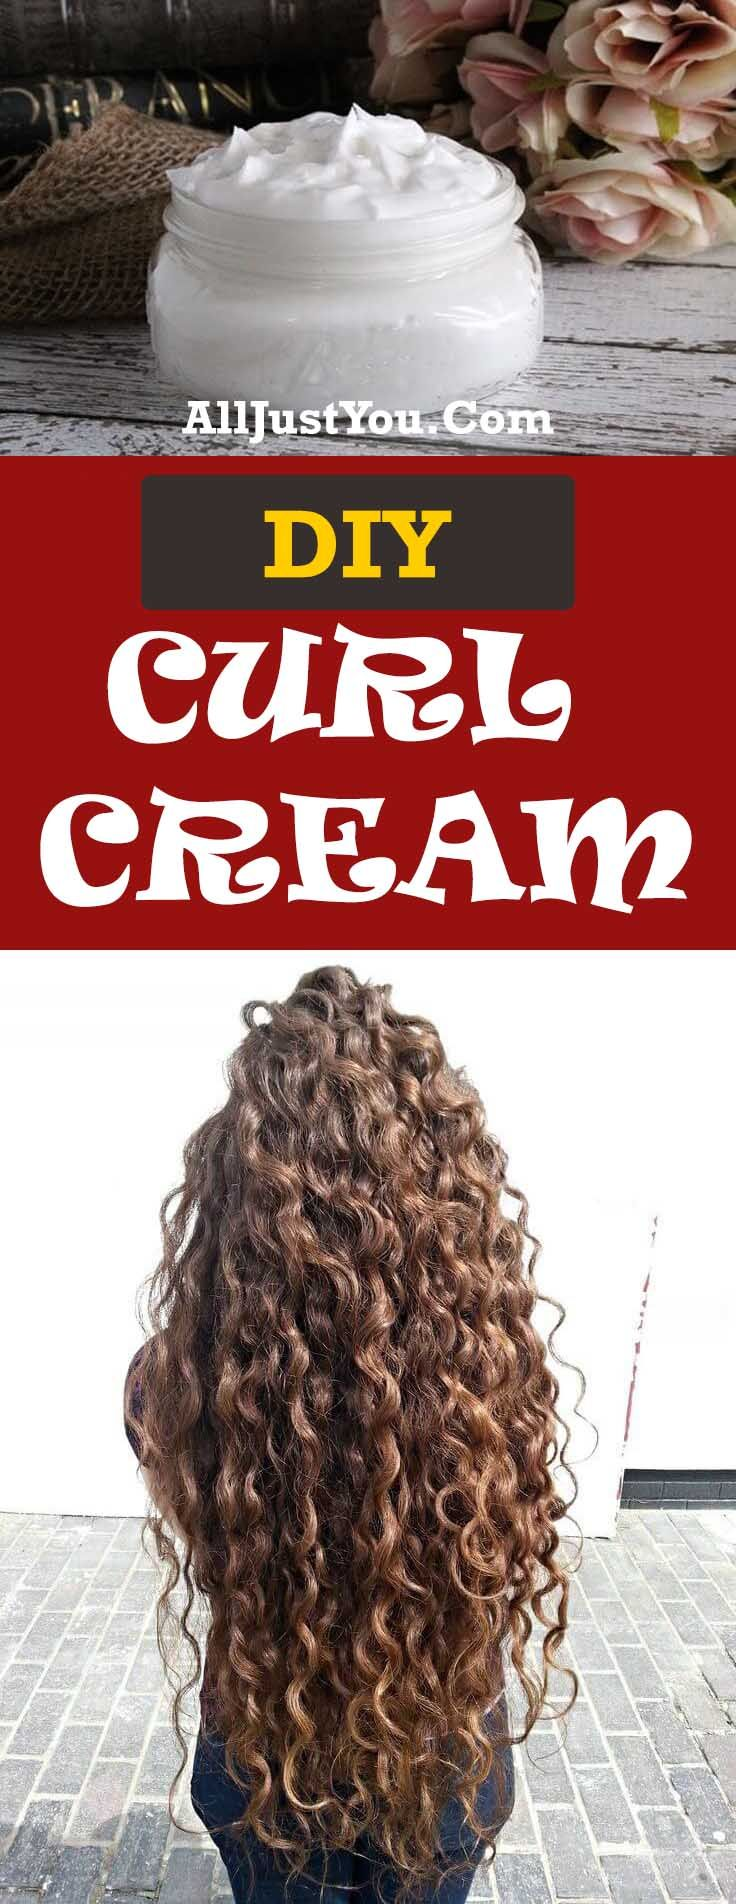 If you have curly or wavy hair, this DIY curl cream recipe will be right up your alley! Instead of saturating your hair with store bought creams and mouses that are loaded with drying alcohols and …